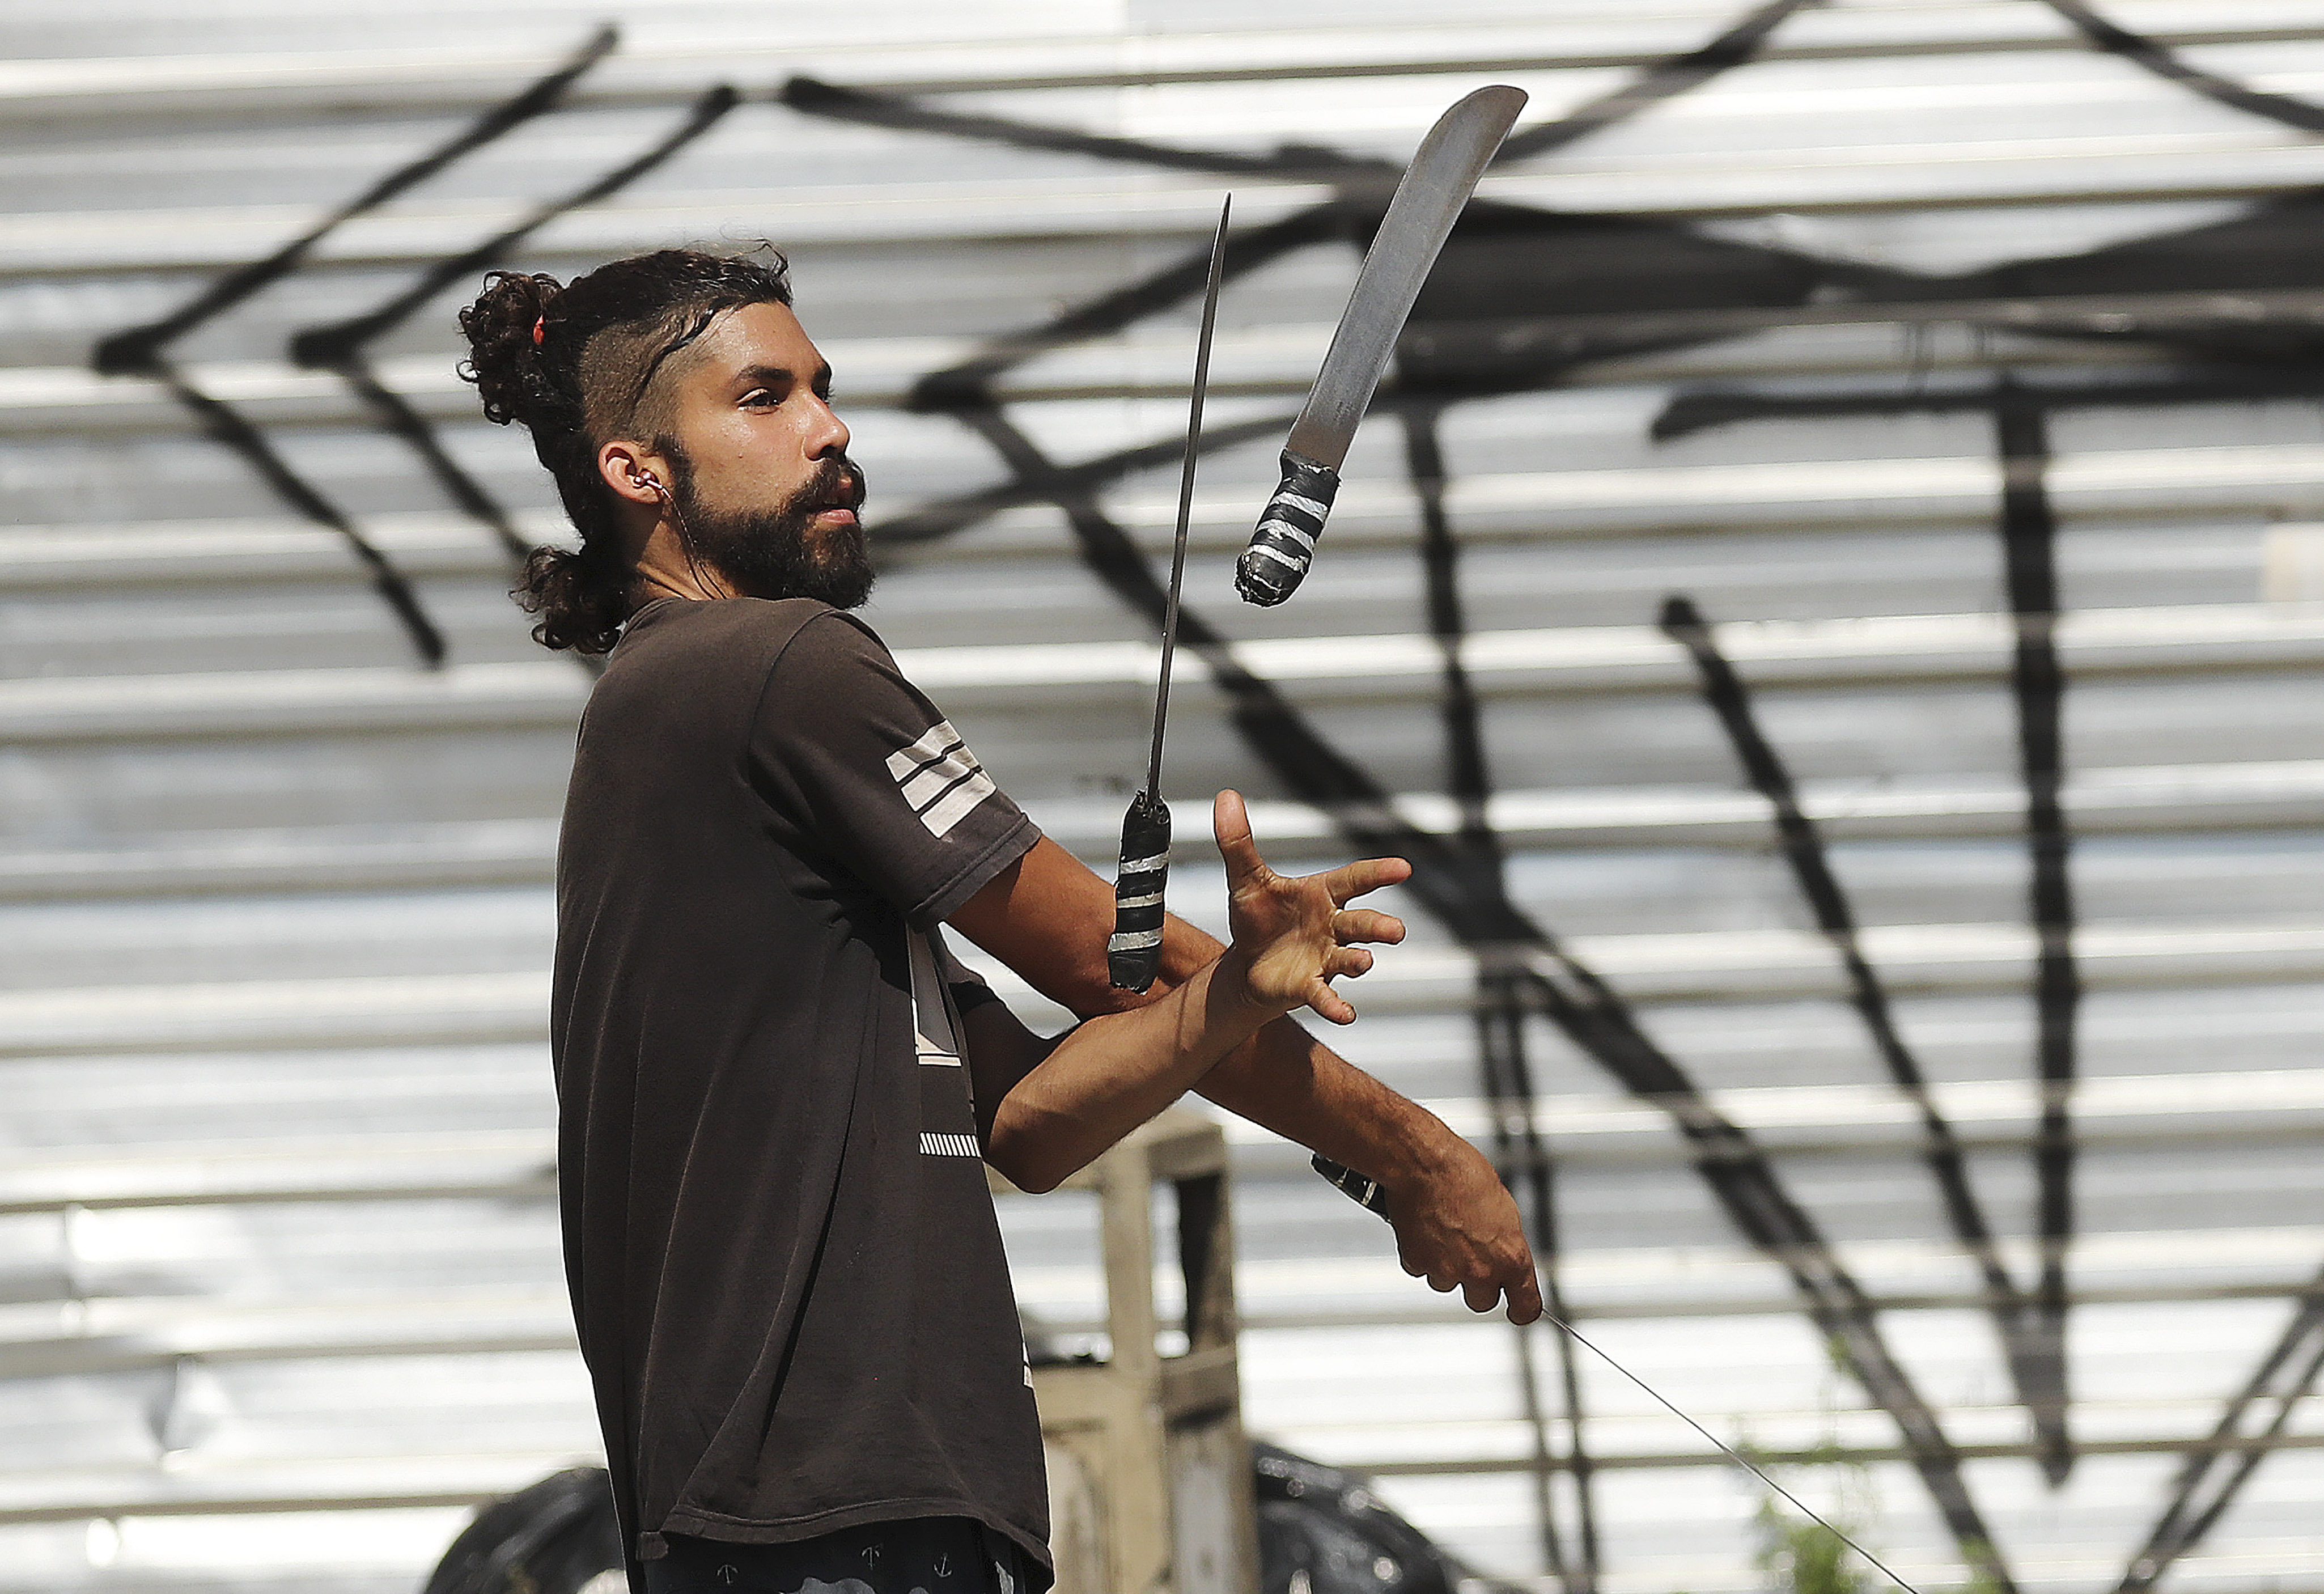 A juggler juggles for money on the street in Sao Paulo, Brazil, on Aug. 31, 2019.